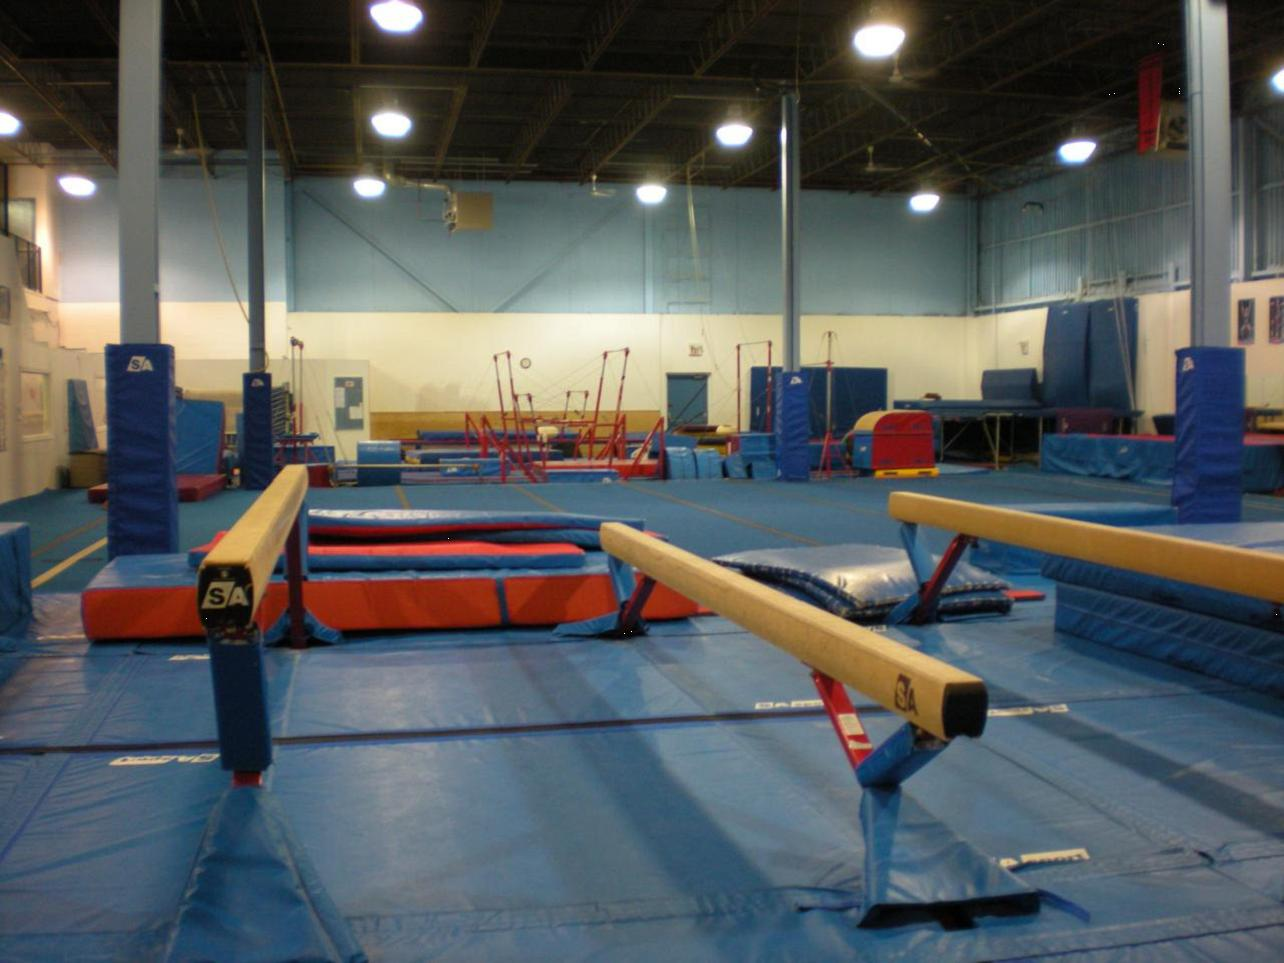 Ormond Beach Gymnastics Center